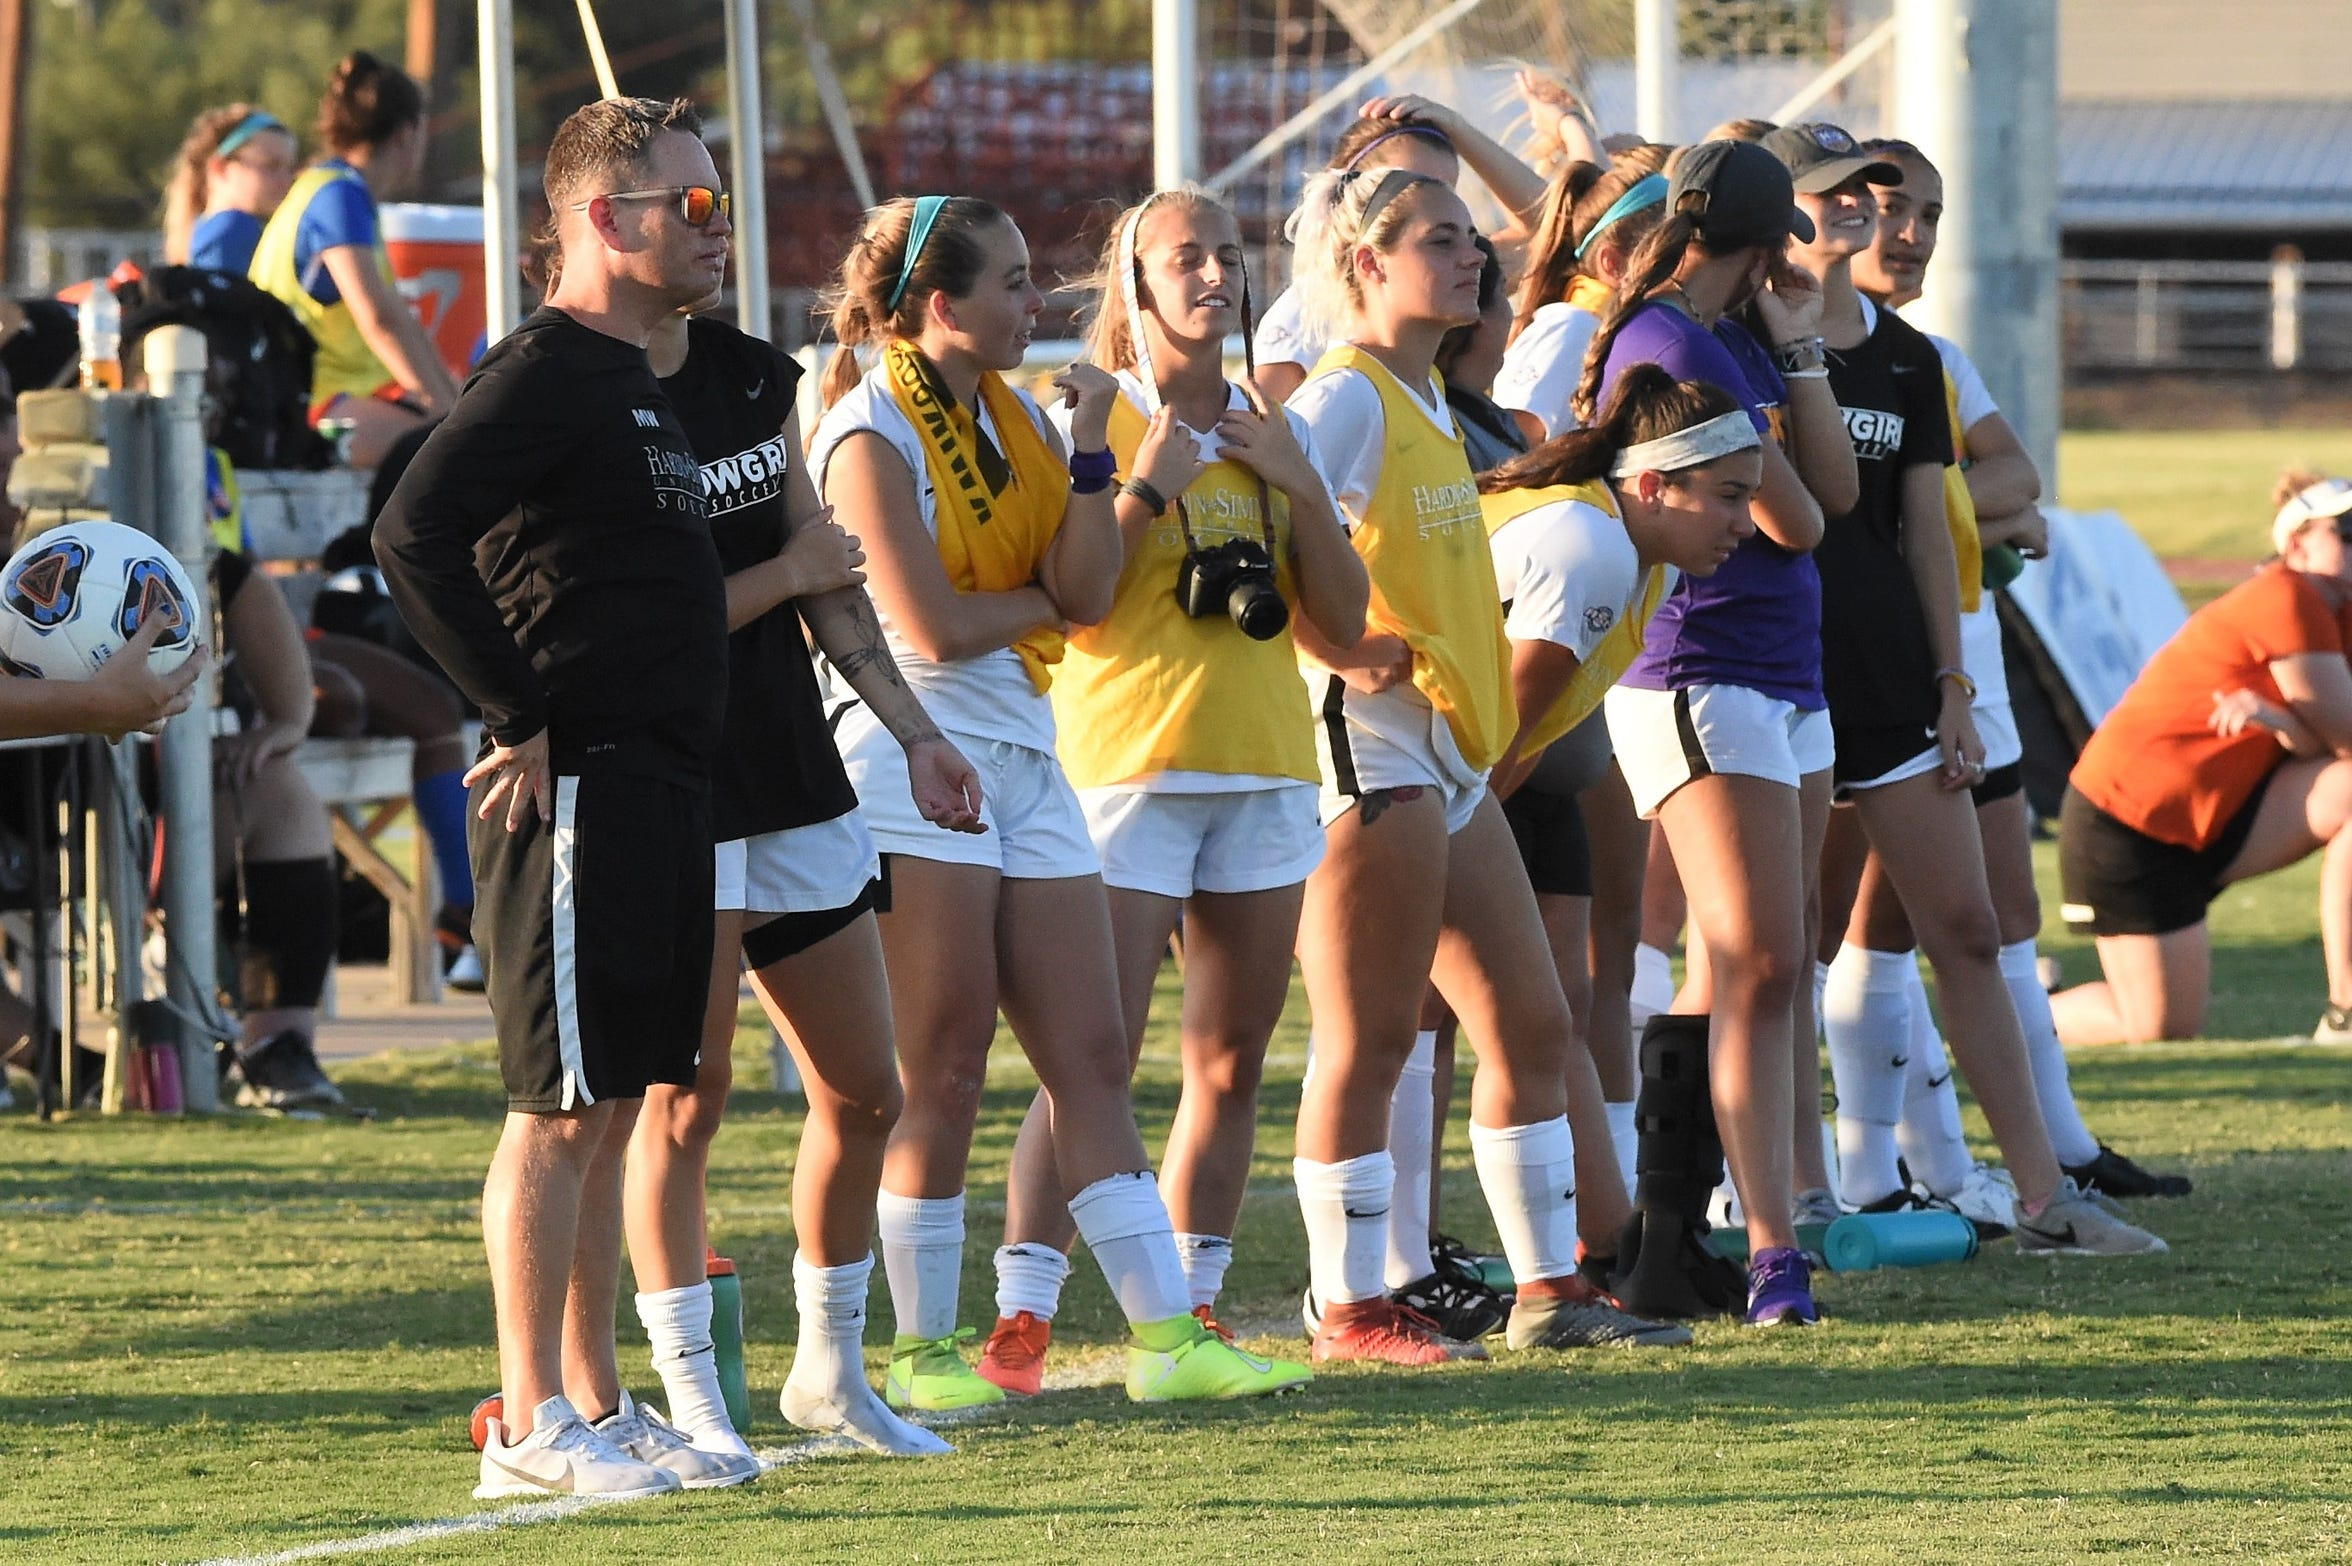 HSU head coach Marcus Wood stands on the sideline against Louisiana College at the HSU Soccer Complex on Thursday, Sept. 26, 2019. The Cowgirls won 10-0.